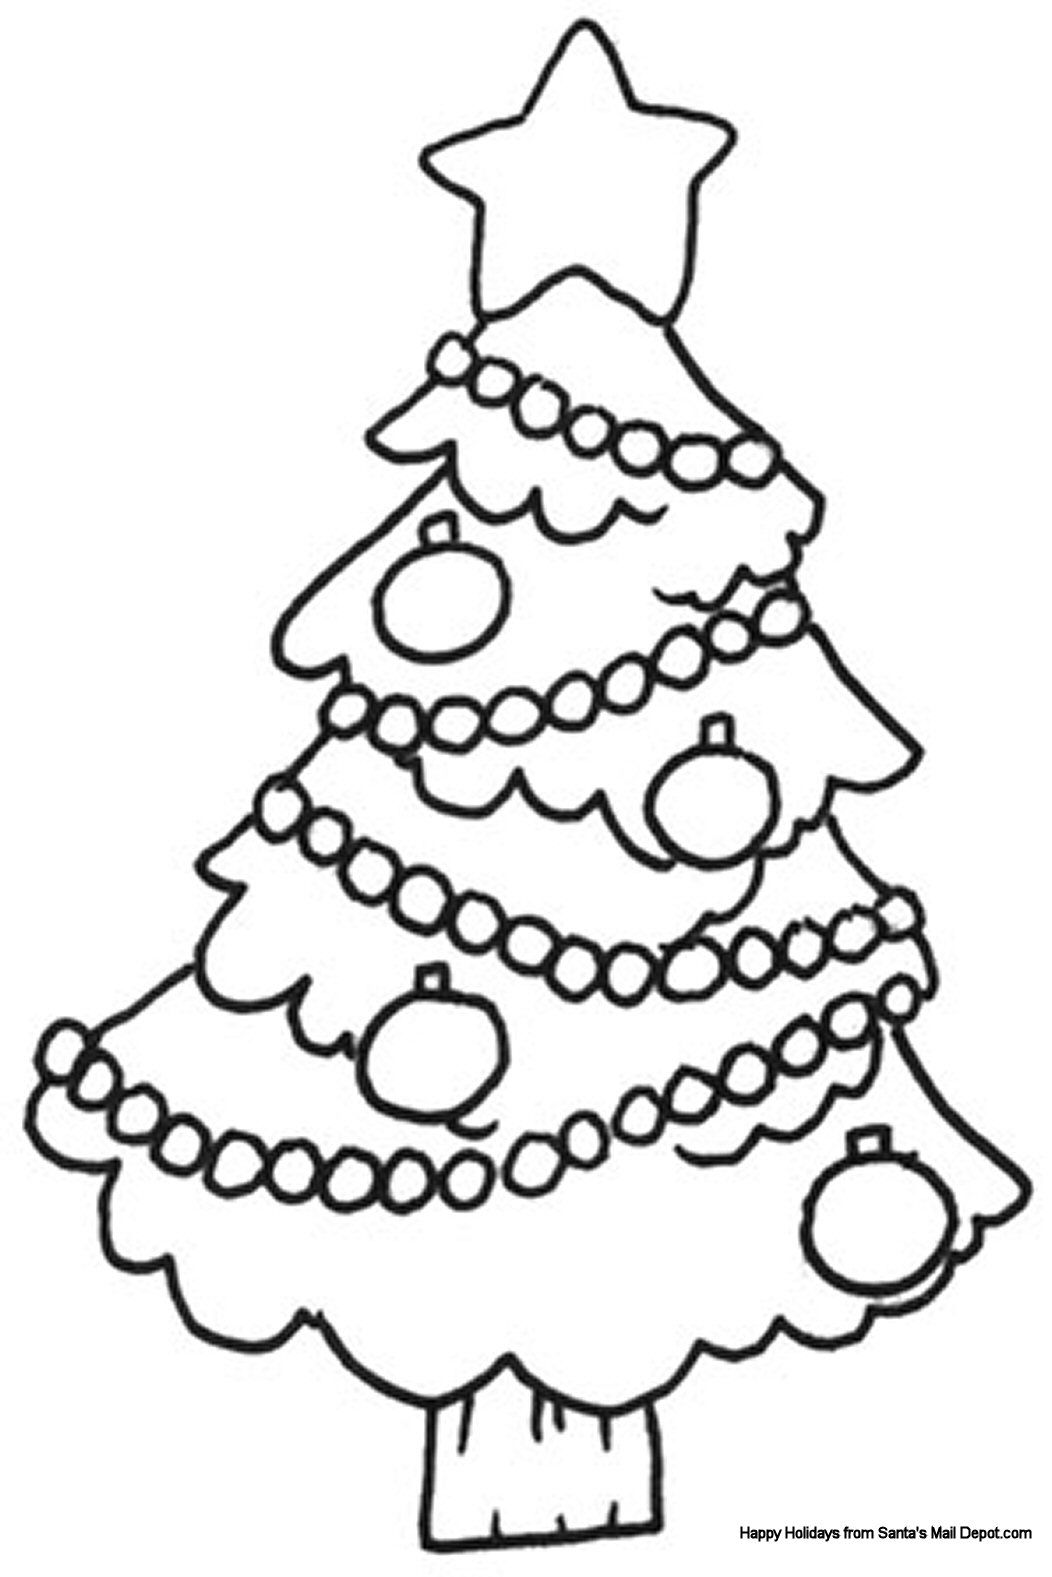 Christmas Colouring Sheet Only Coloring Pages Christmas Tree Coloring Page Printable Christmas Coloring Pages Christmas Pictures To Color